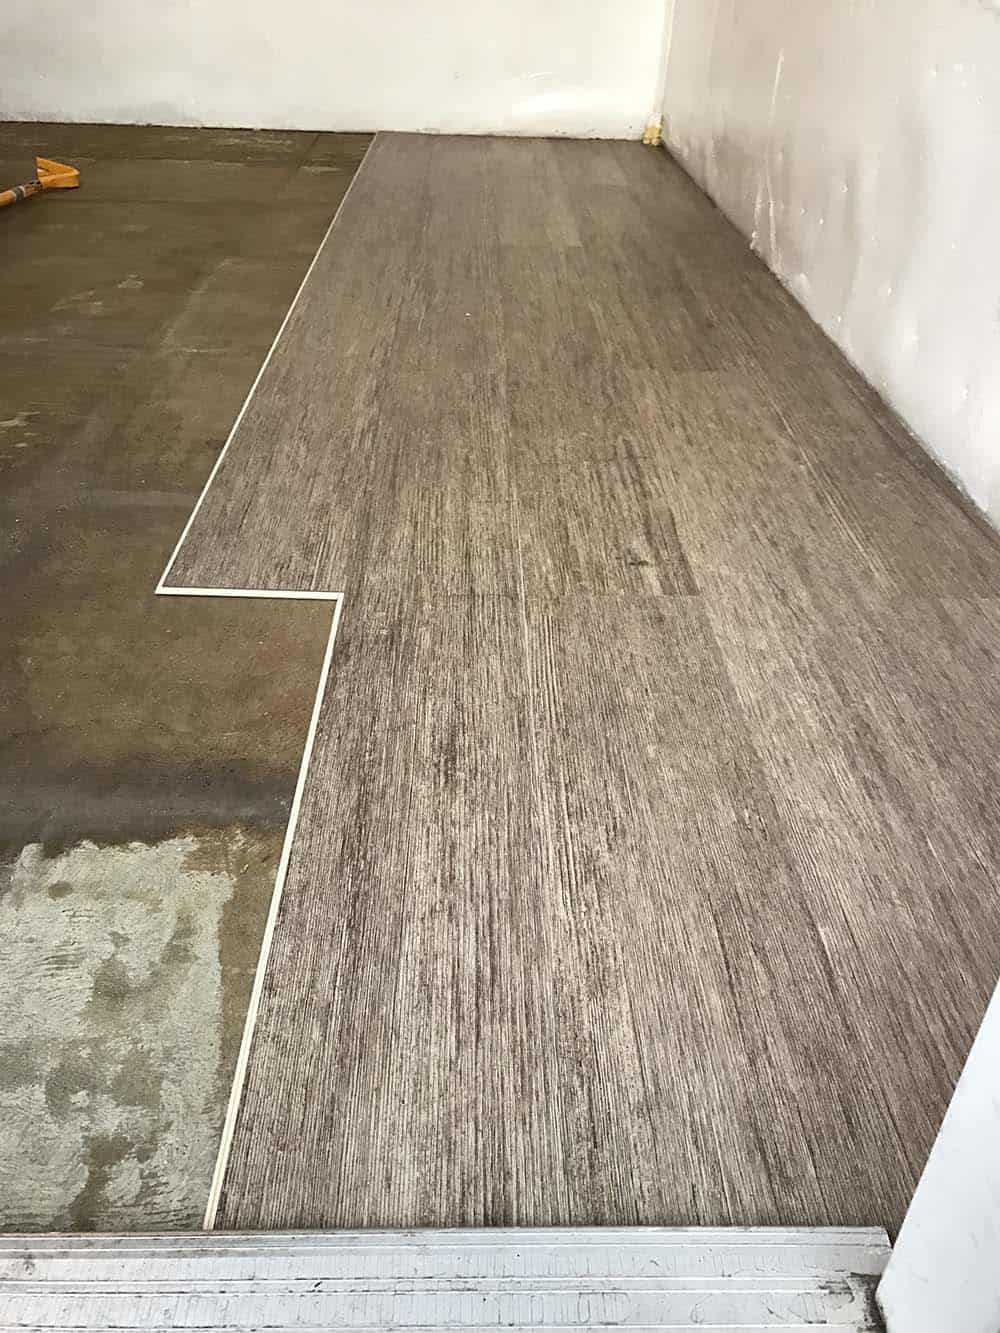 Installing Glue Down Vinyl Plank Flooring Over Plywood